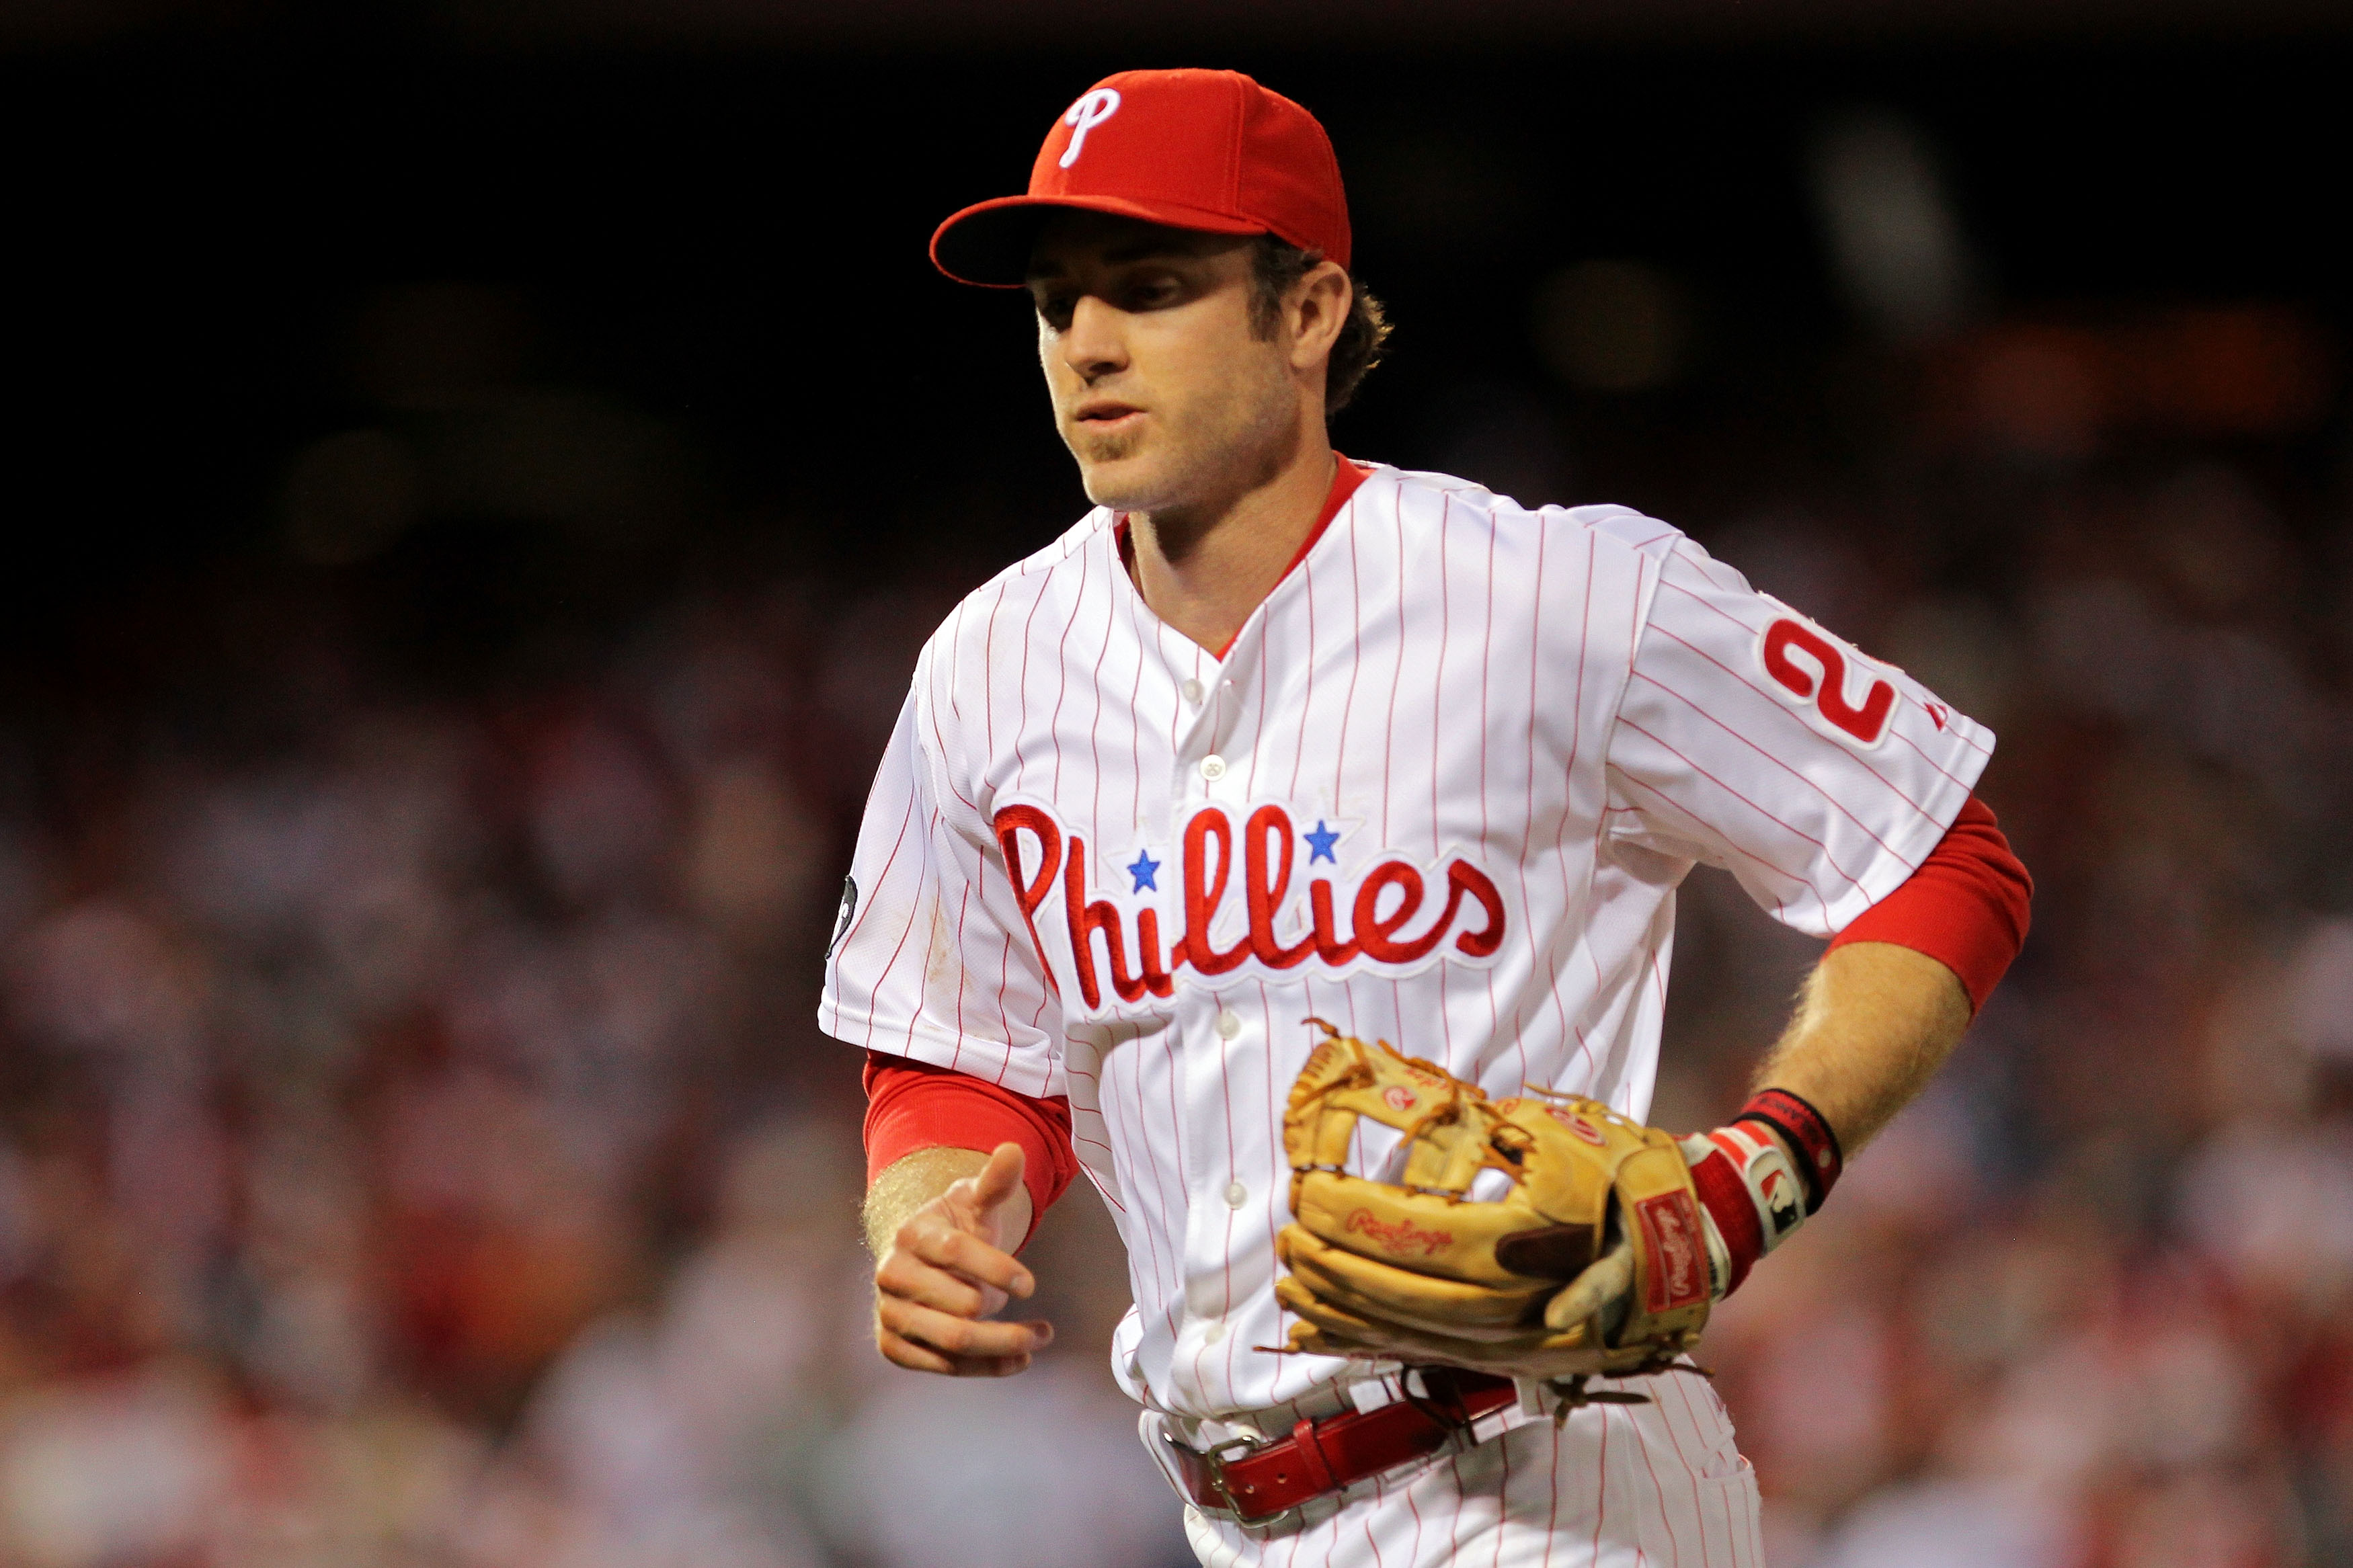 Utley's almost guarenteed to have a better season than 2010